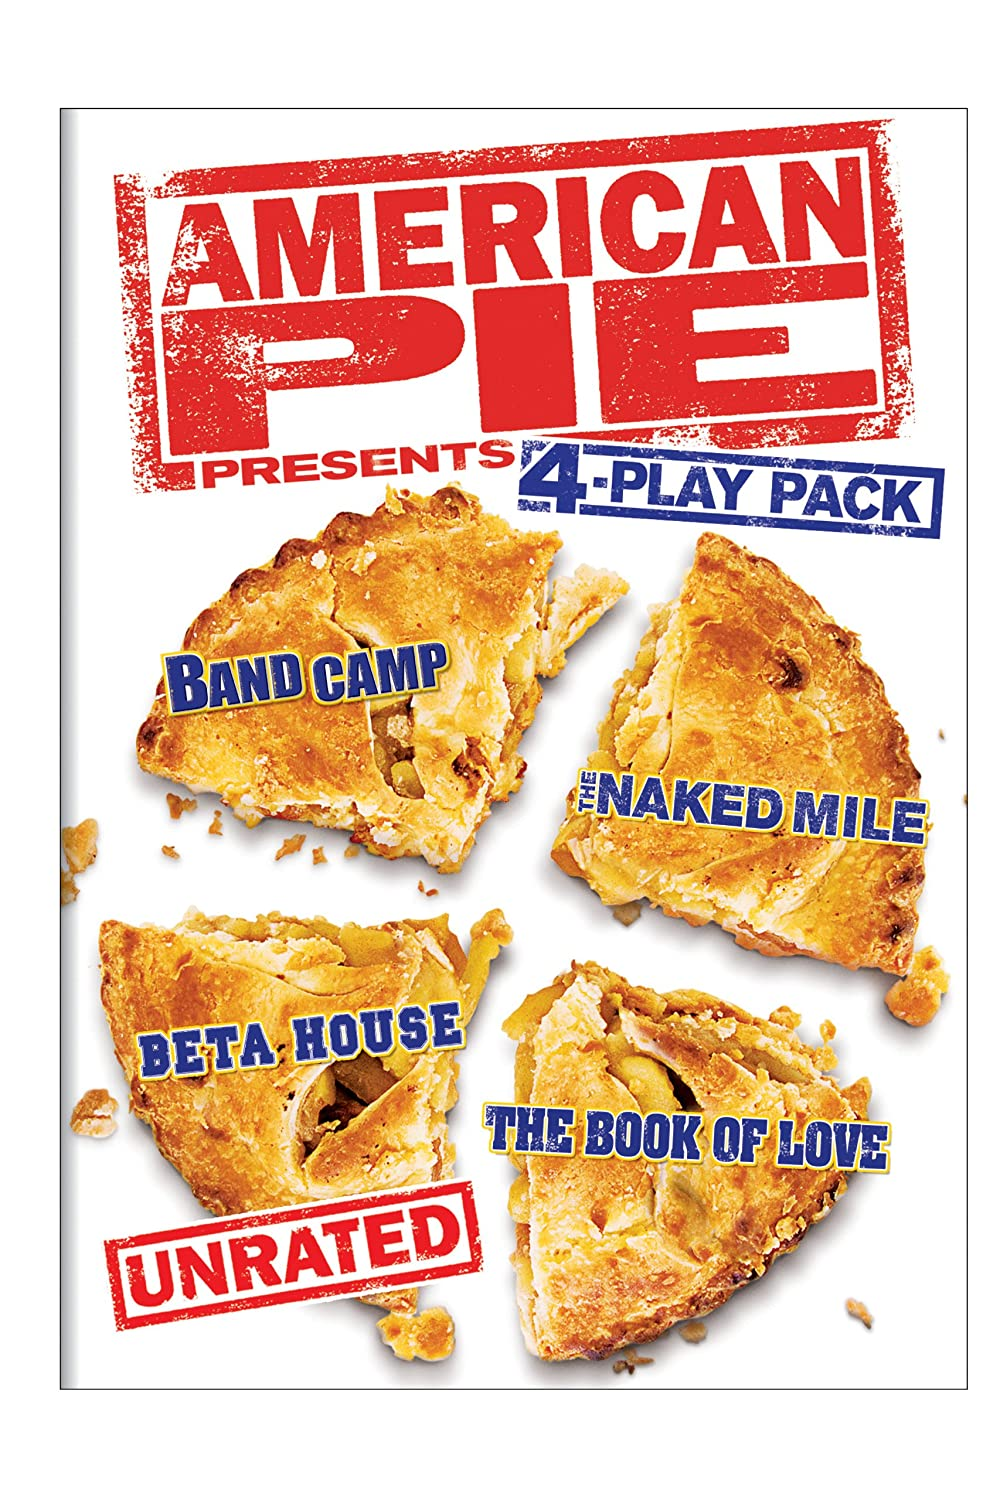 American Pie Presents Unrated 4 Play Pack Band Camp The Naked Mile Beta House The Book Of Love Tad Hilgenbrinck Eugene Levy Christopher Mcdonald Bug Hall Arielle Kebbel John